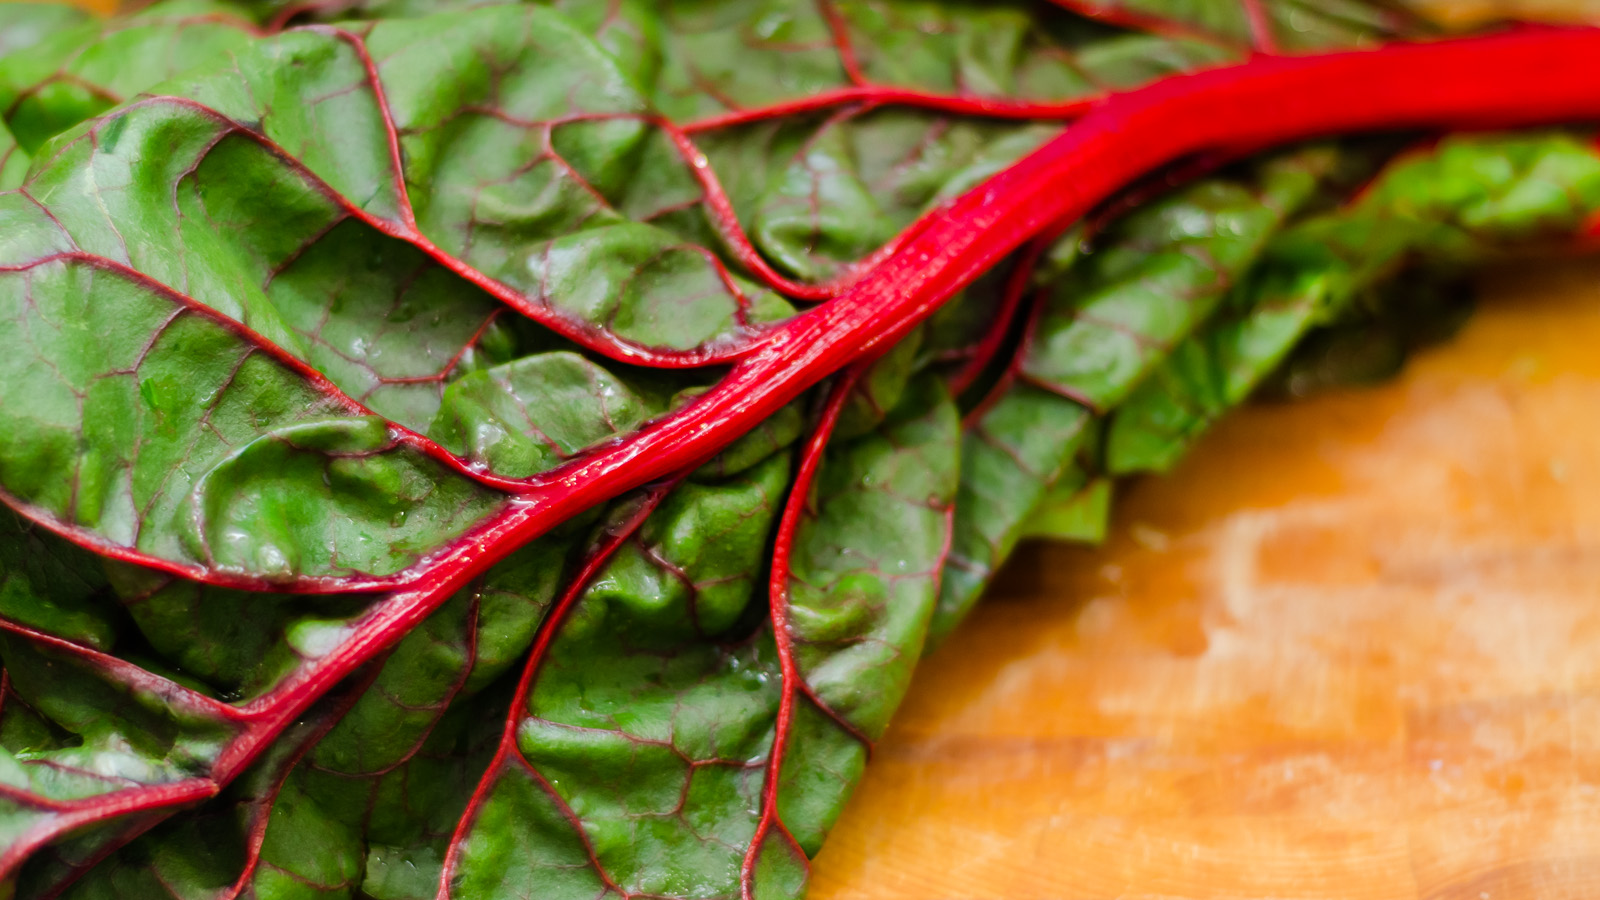 hearty red chard from green kale to red kale from collard greens to ...